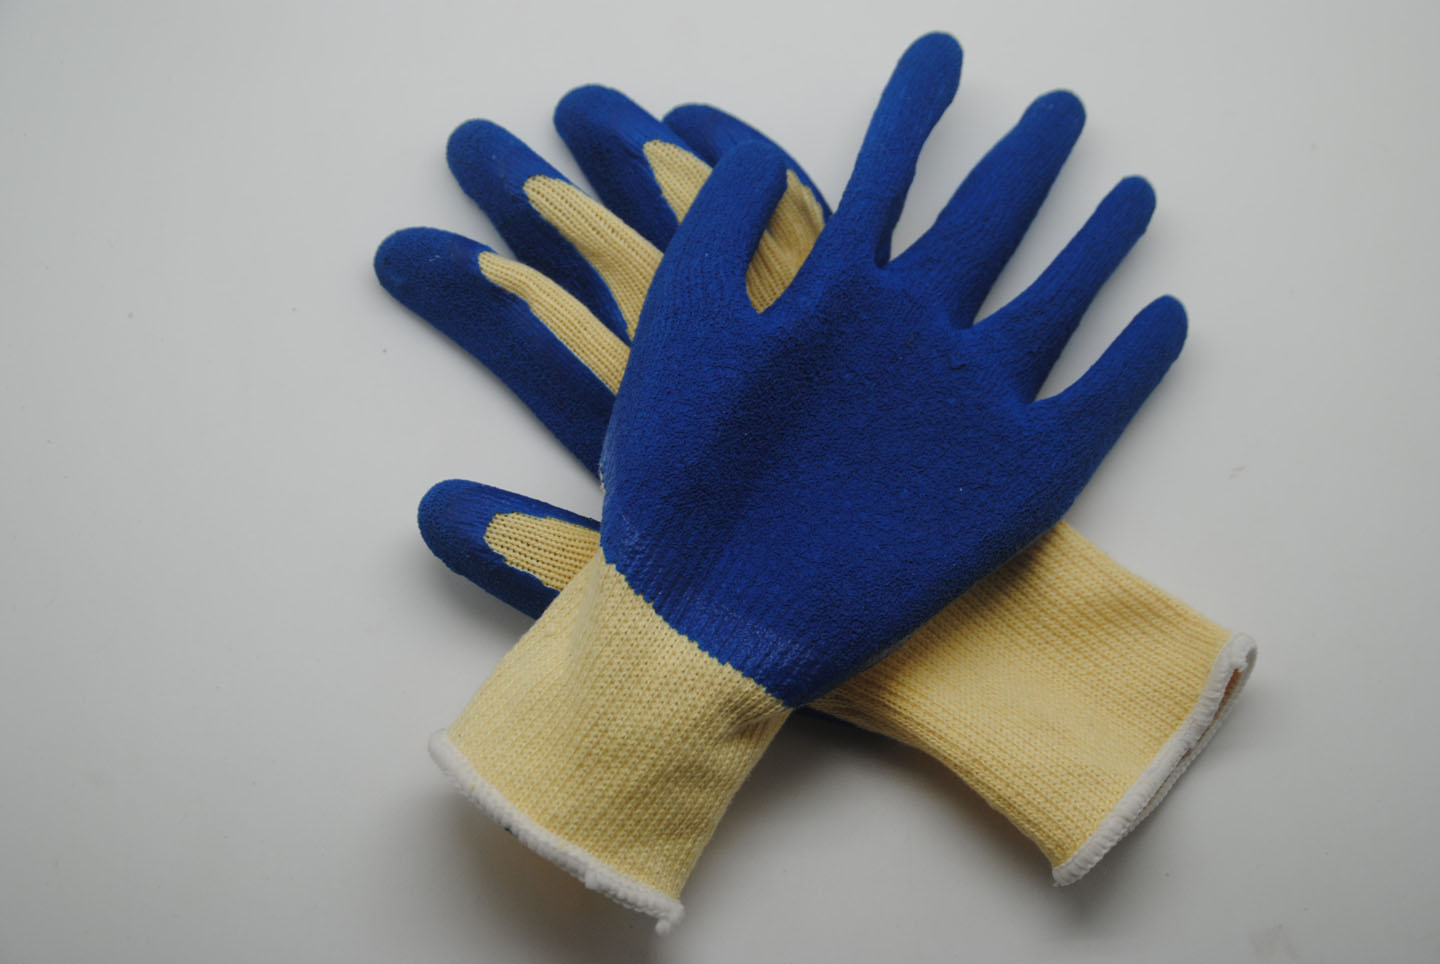 how to make glove glu